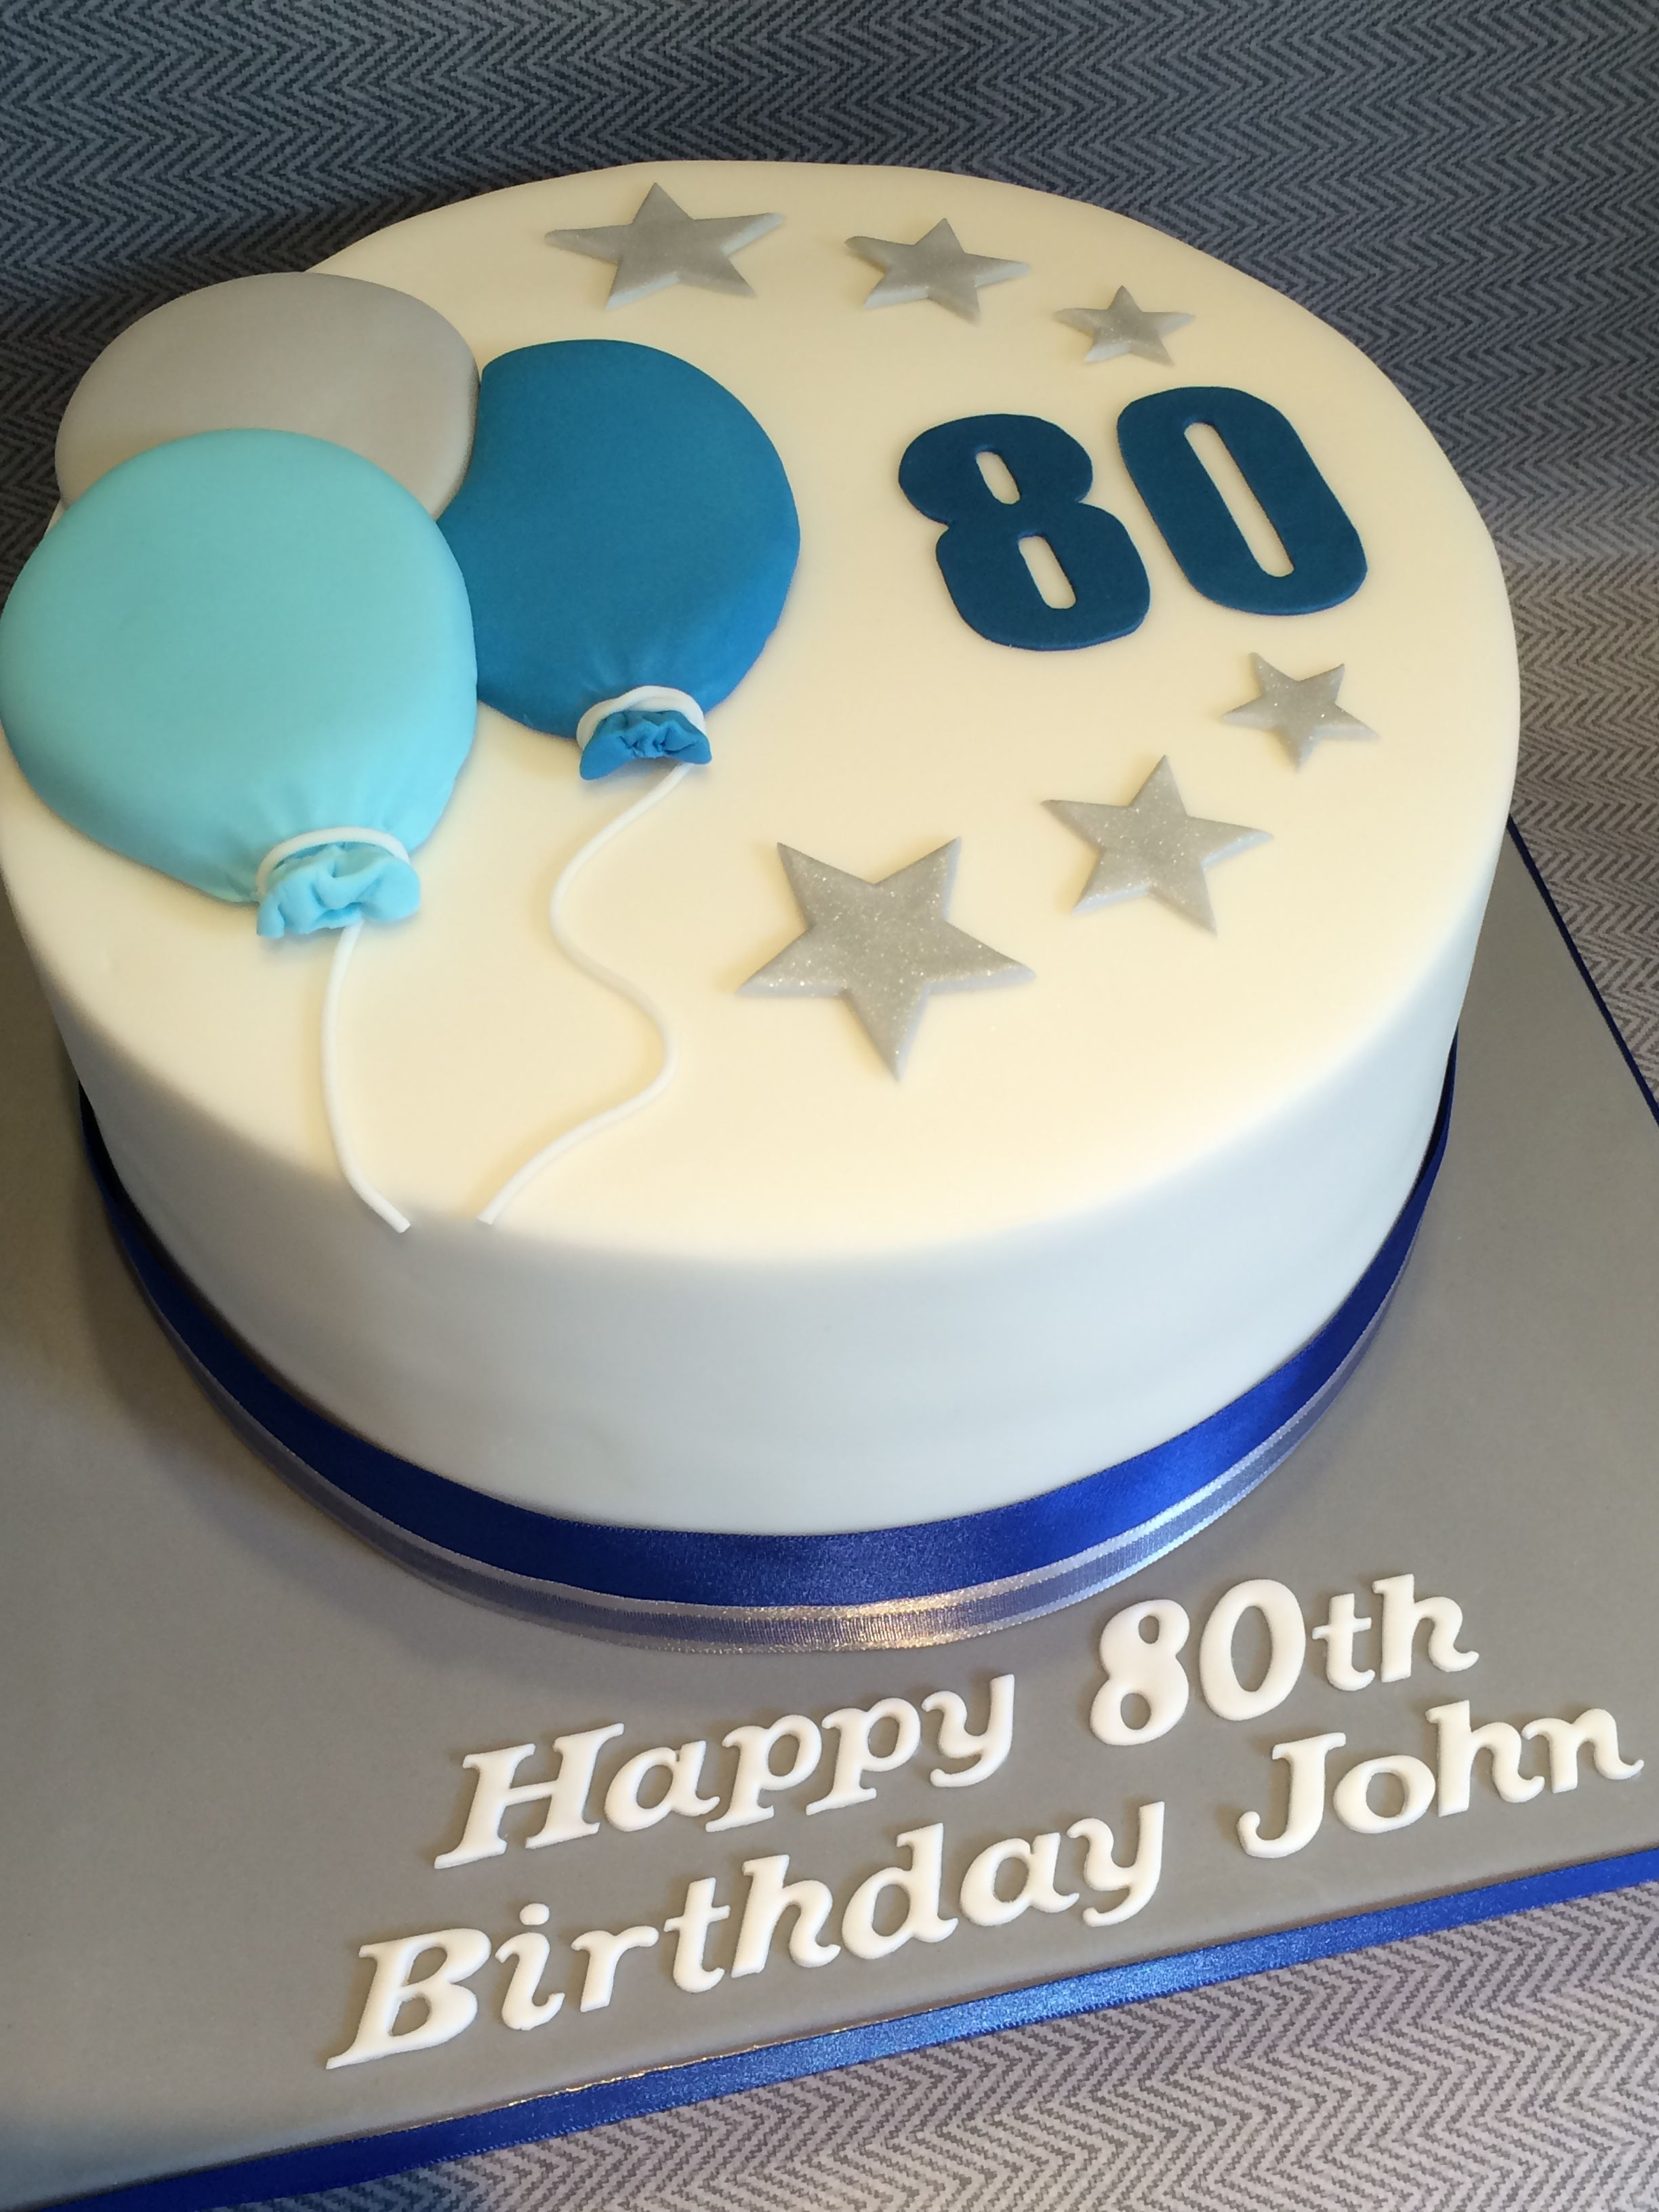 Awe Inspiring Mens 80Th Birthday Cake With Balloons Stars Blue Grey Colours Funny Birthday Cards Online Hendilapandamsfinfo